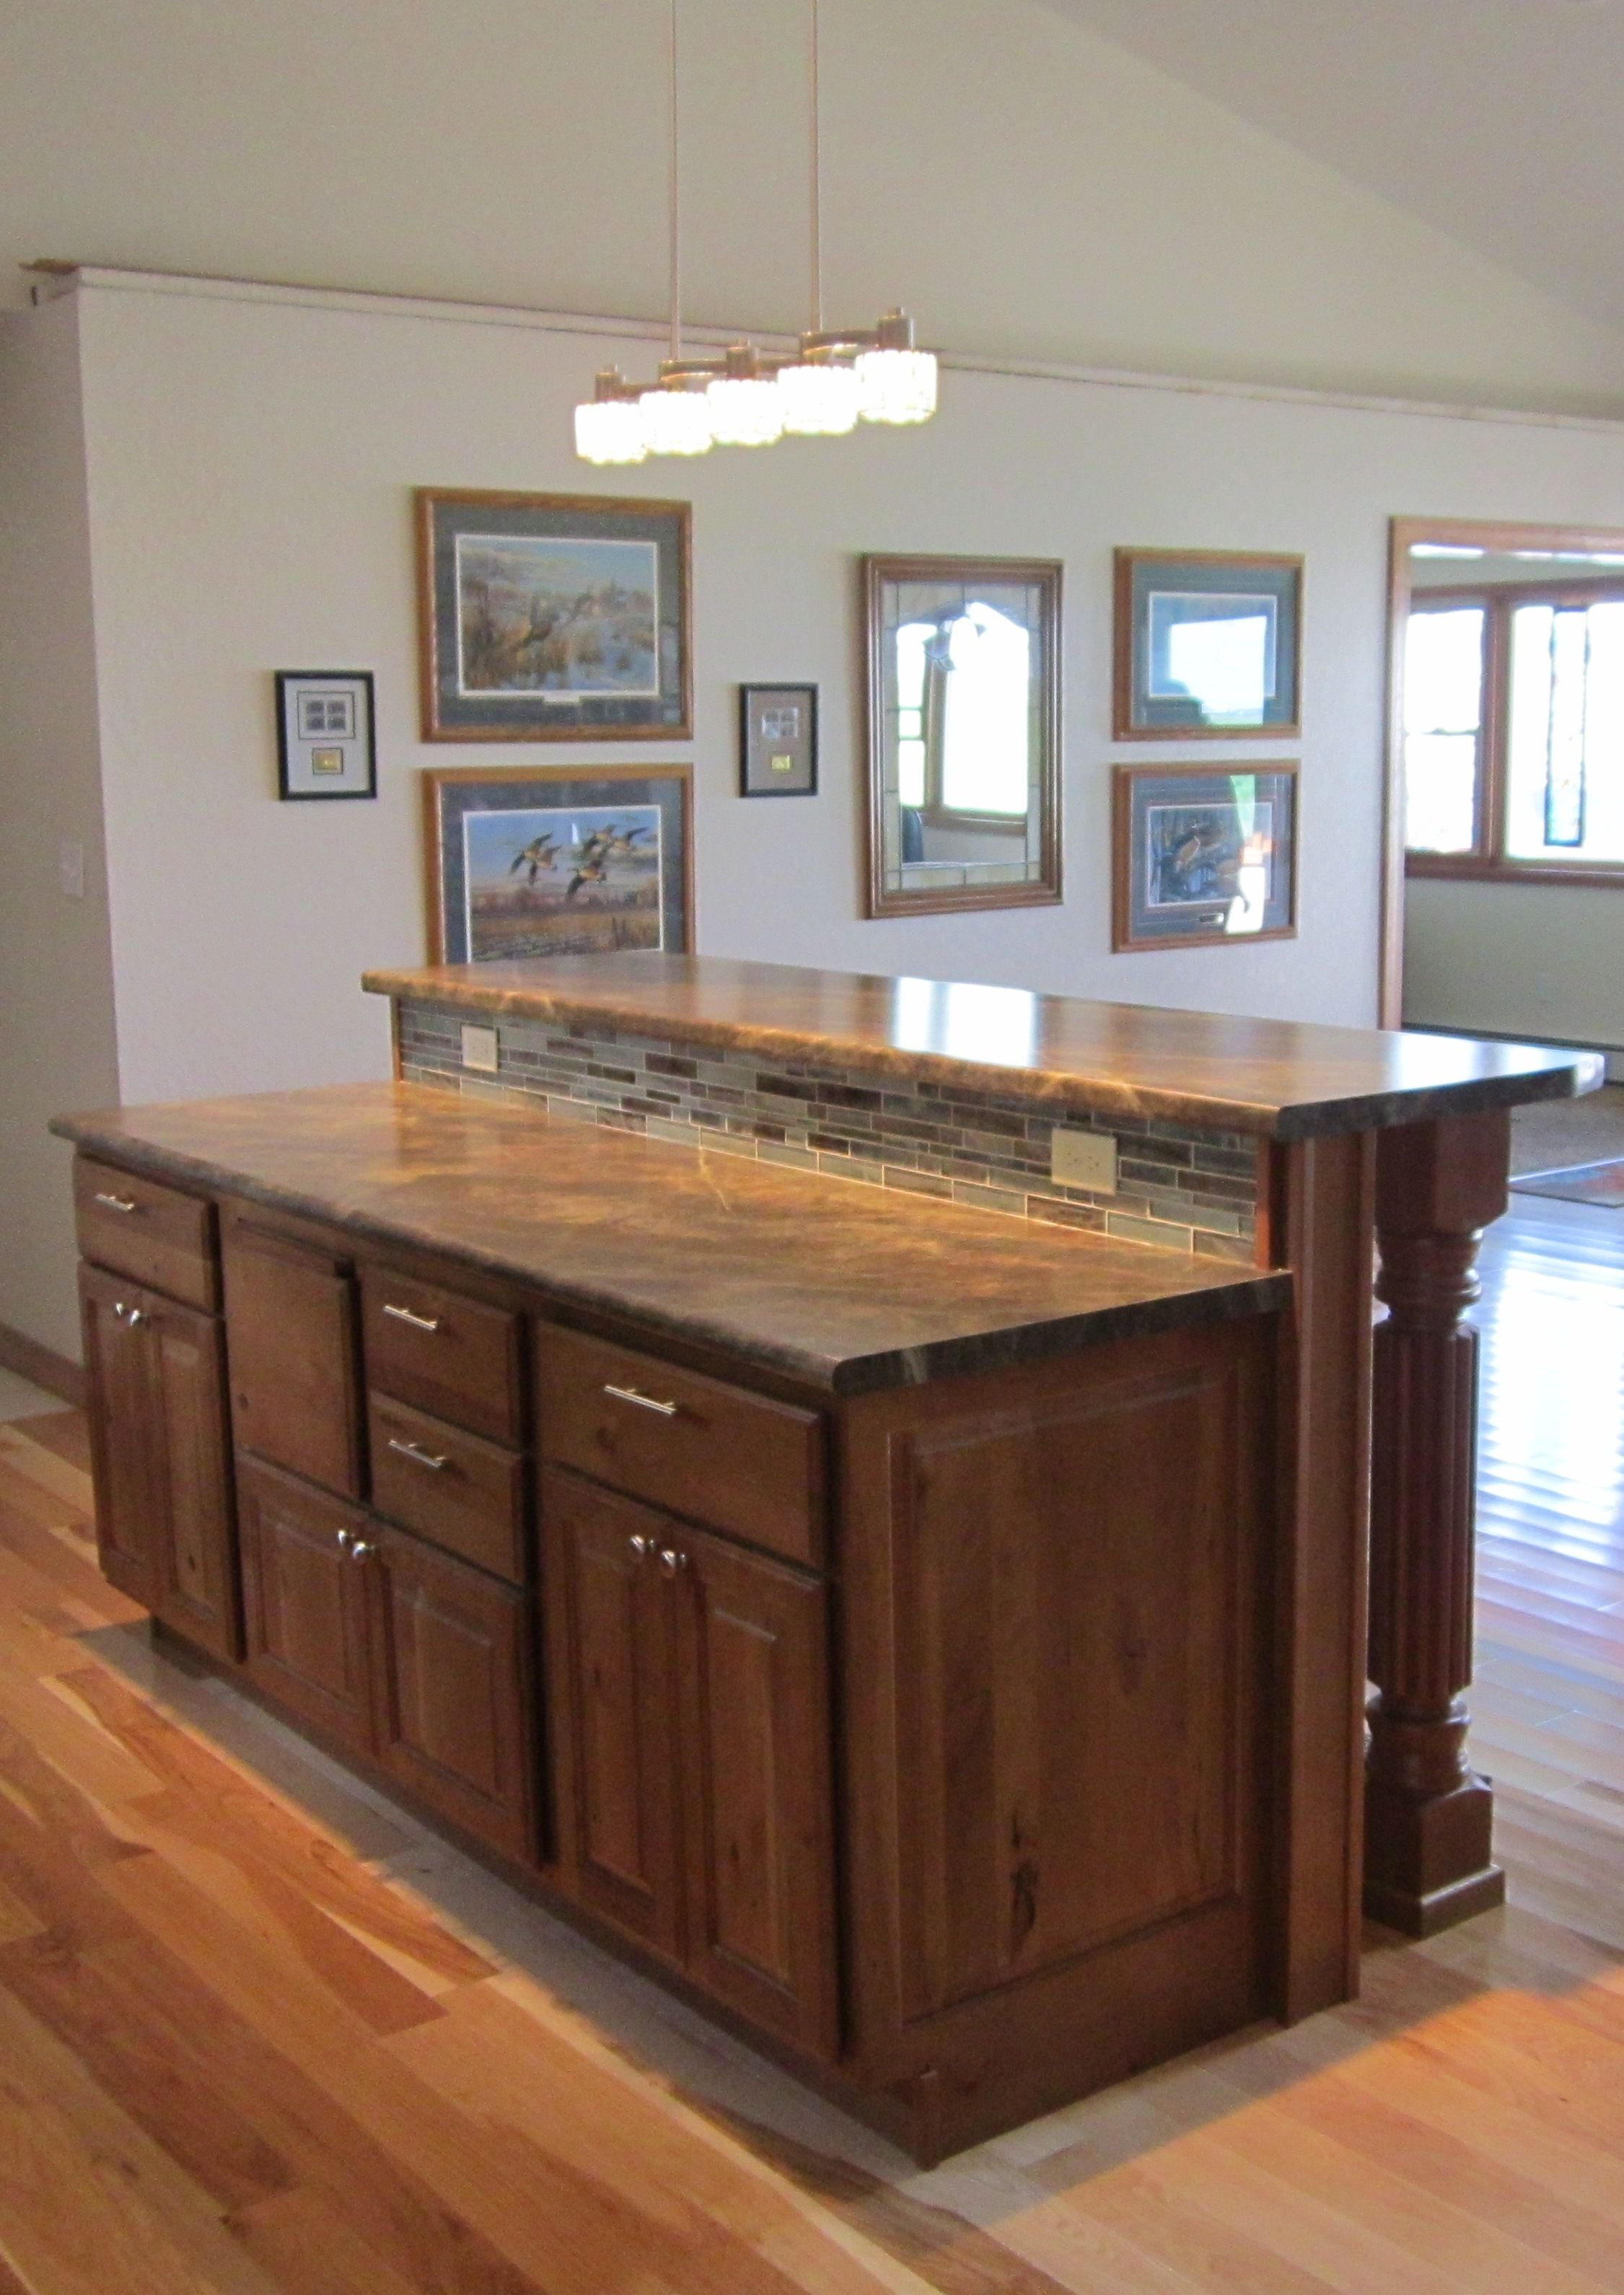 Cherry Cabinets In Kitchen Karman Brand Rustic Cherry Cabinets Harvest Doorstyle With